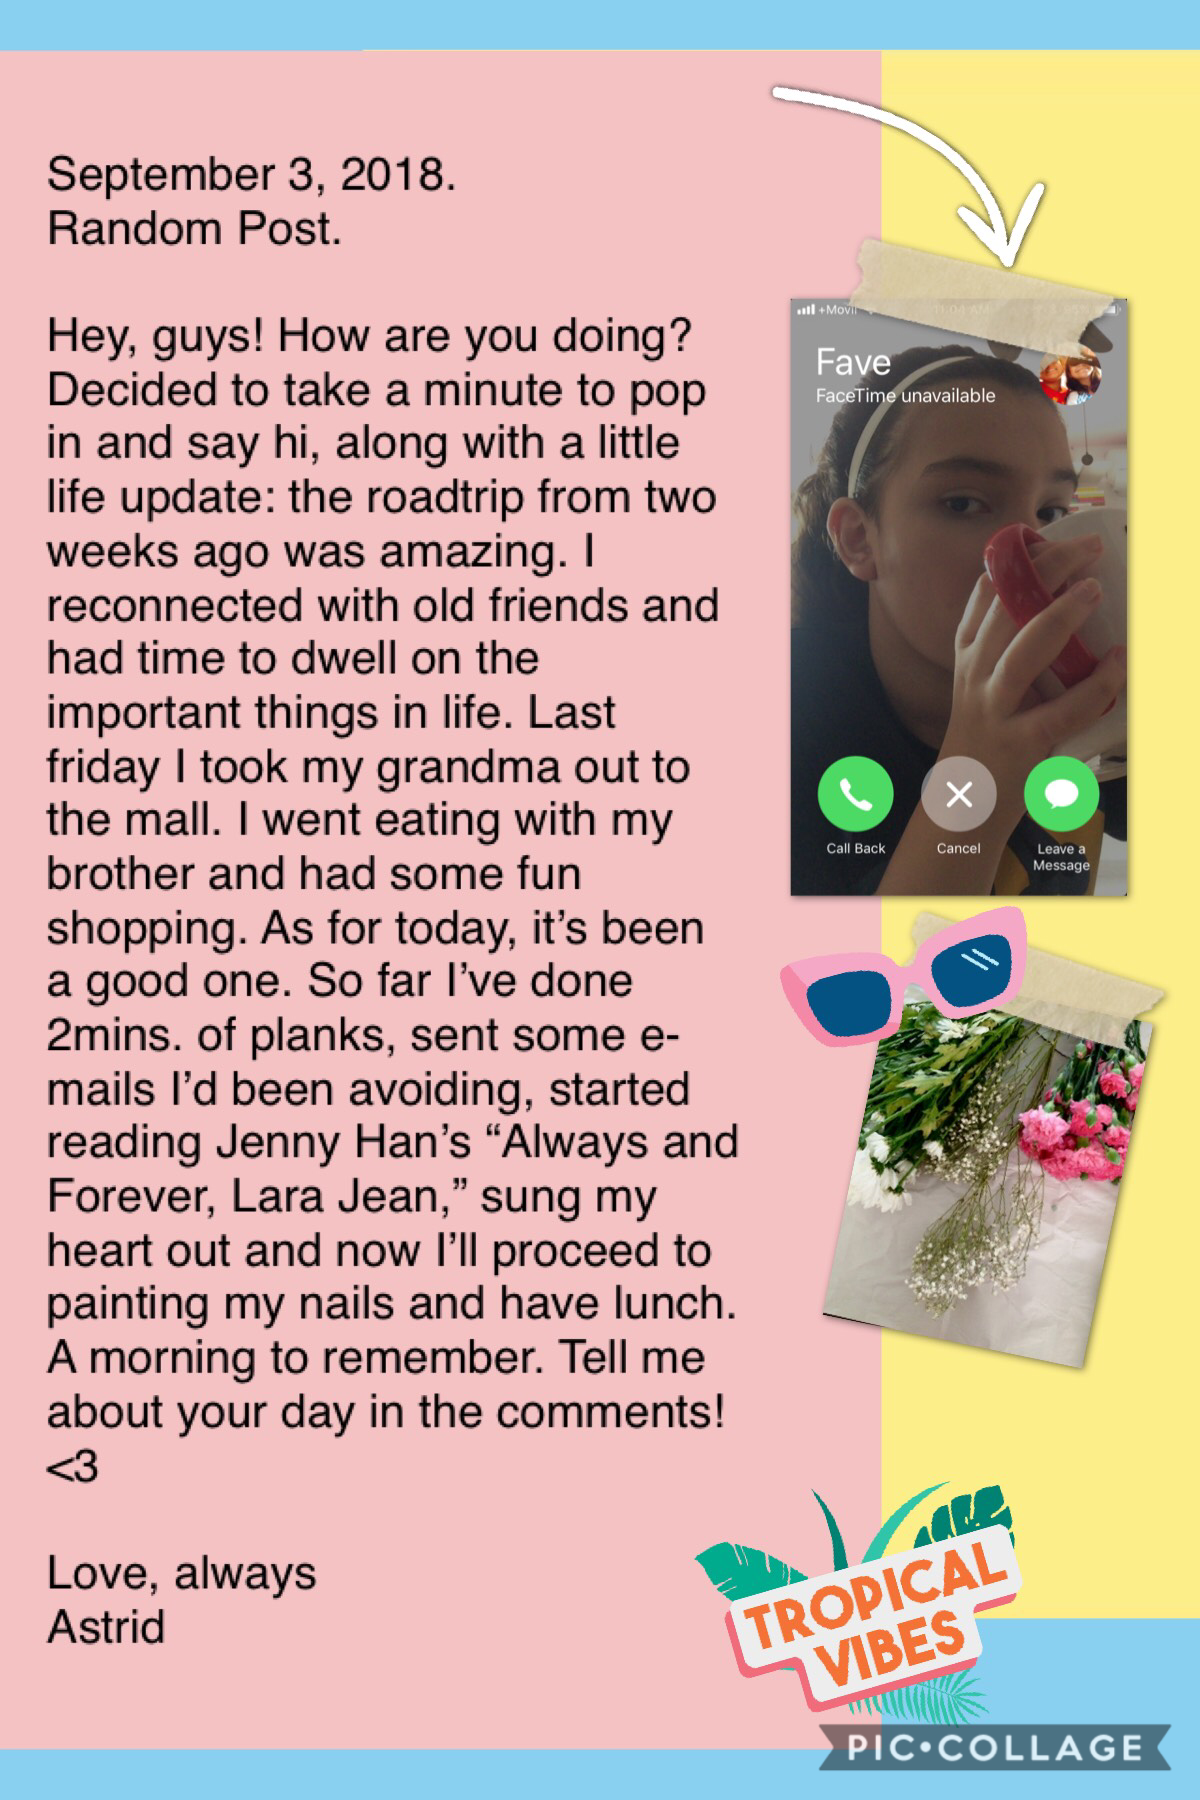 see how julie won't answer my facetime: sad. —pastel background and stickers! am i cute yet 😊😂💕